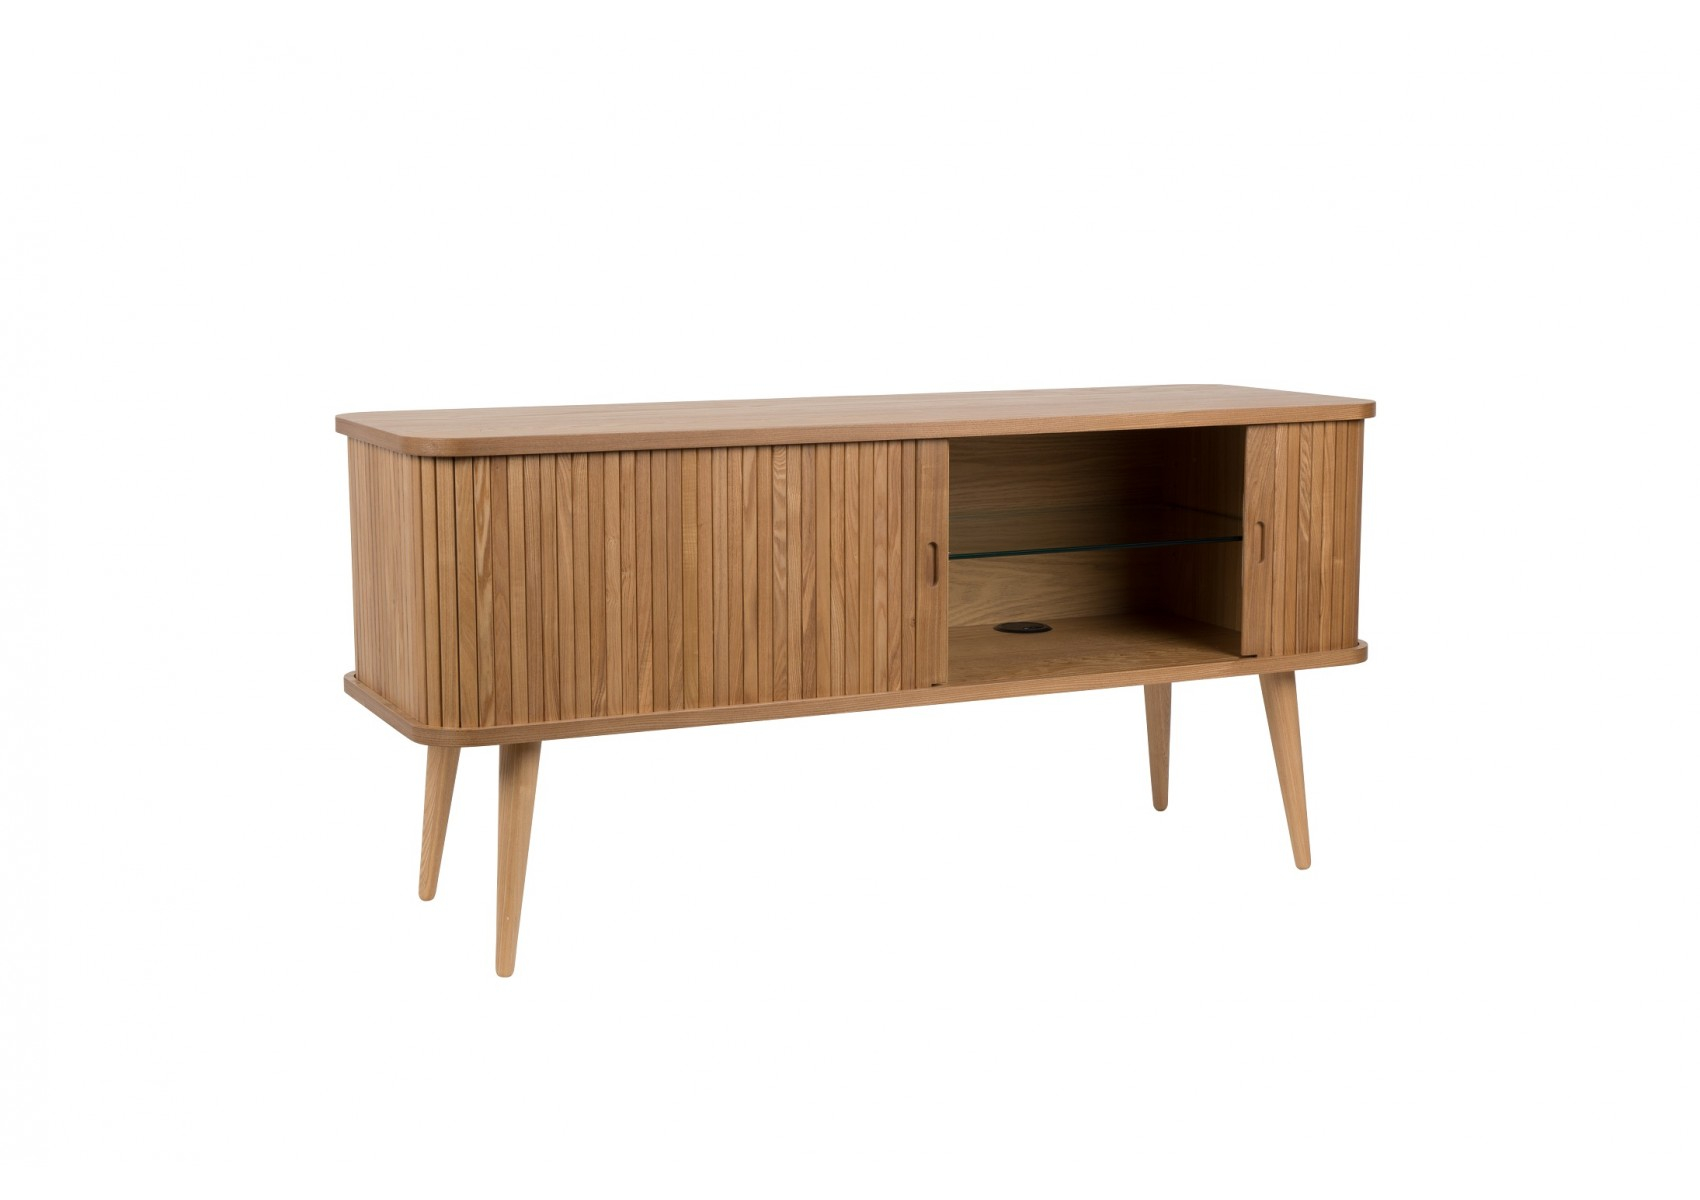 Buffet En Bois Au Design Scandinave Sideboard Barbier Par Zuiver # Meuble Tv Coulissant